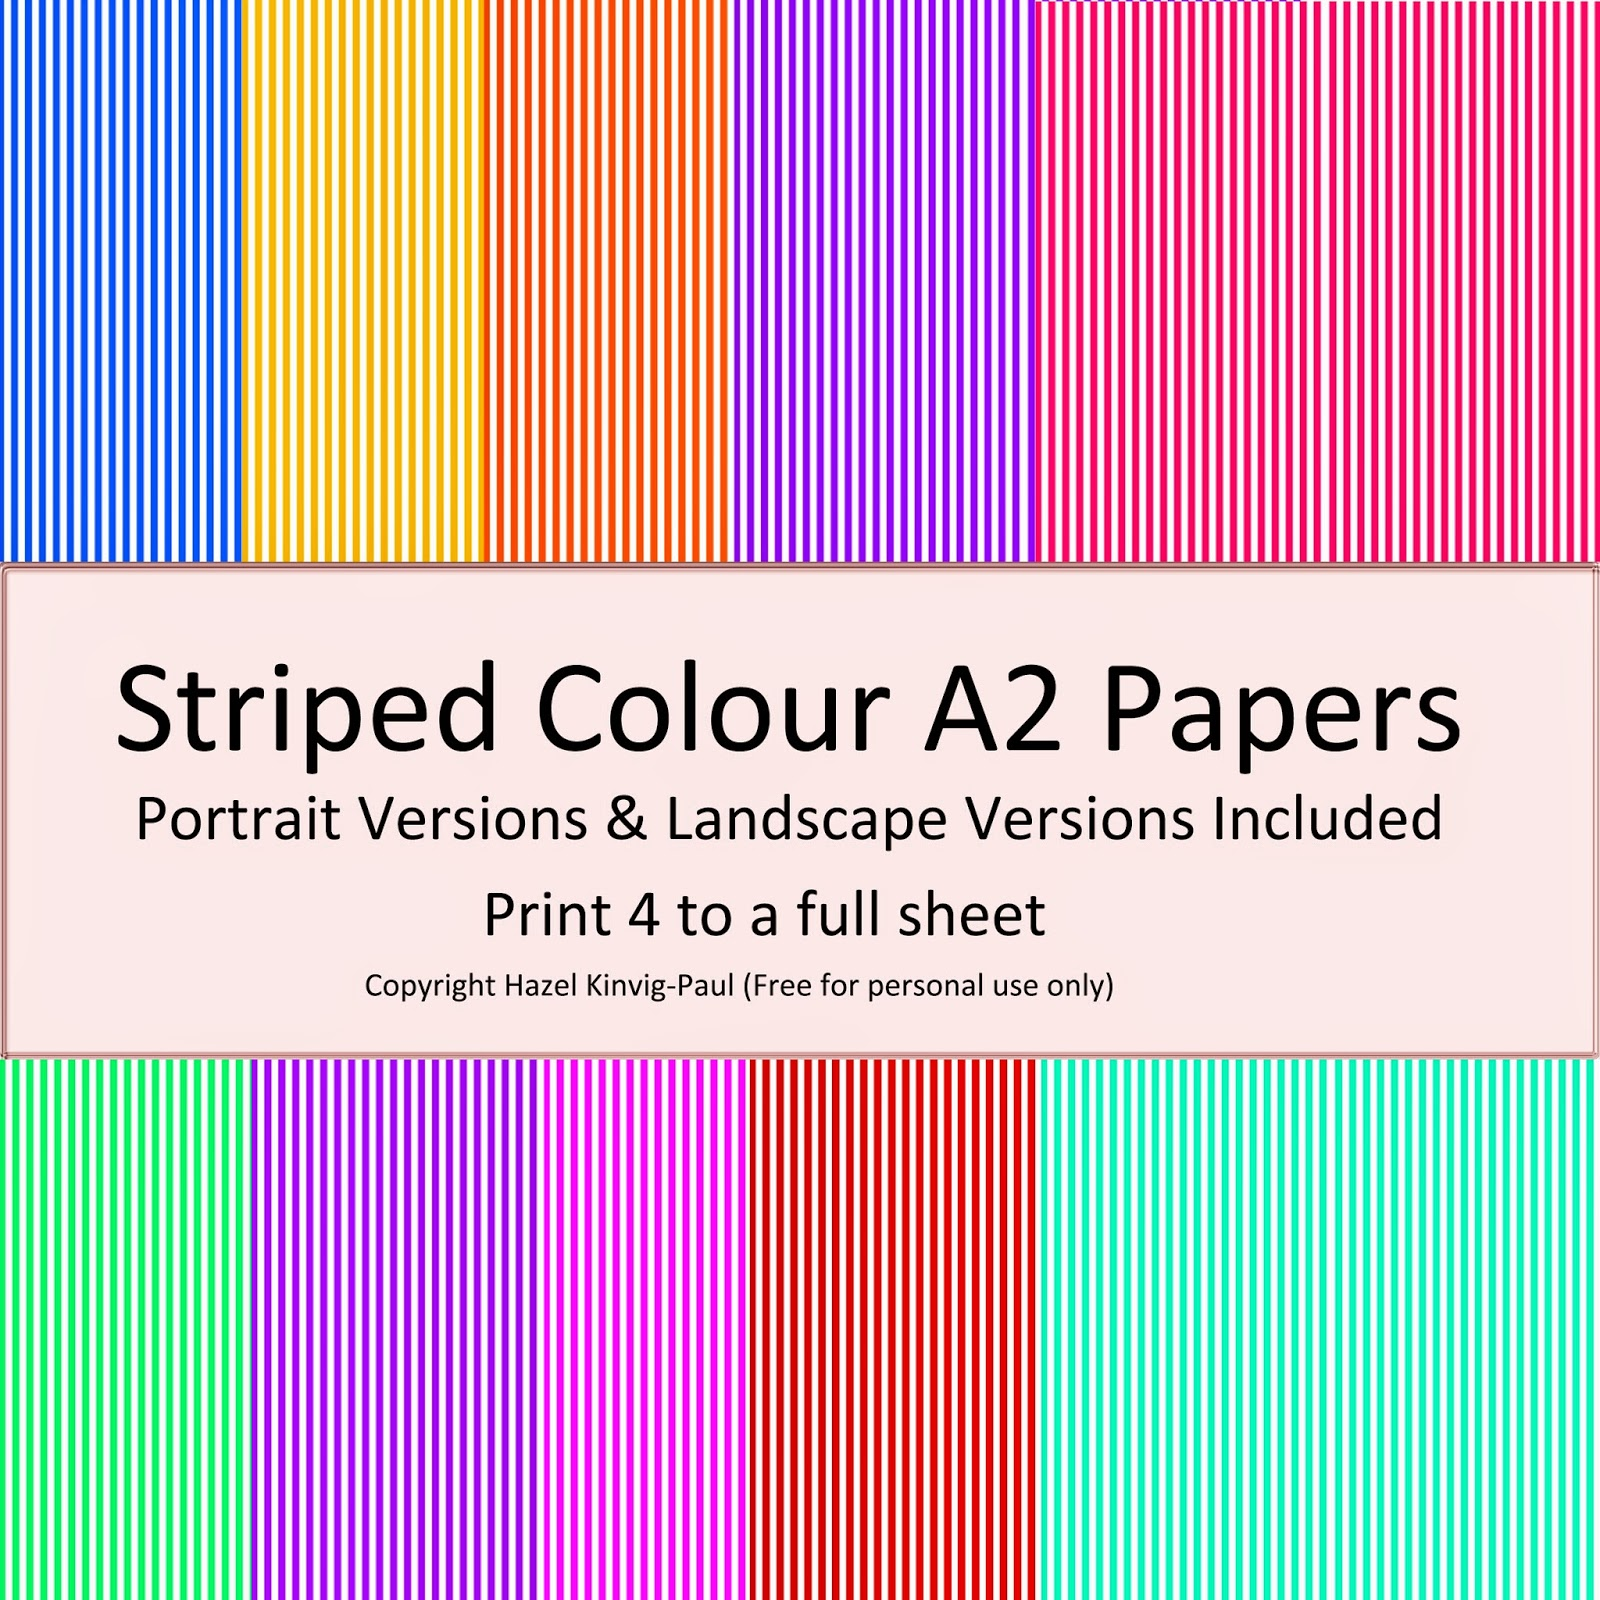 http://www.mediafire.com/download/55v0eysw9mk7a3s/A2_Striped_White_&_Colour.zip